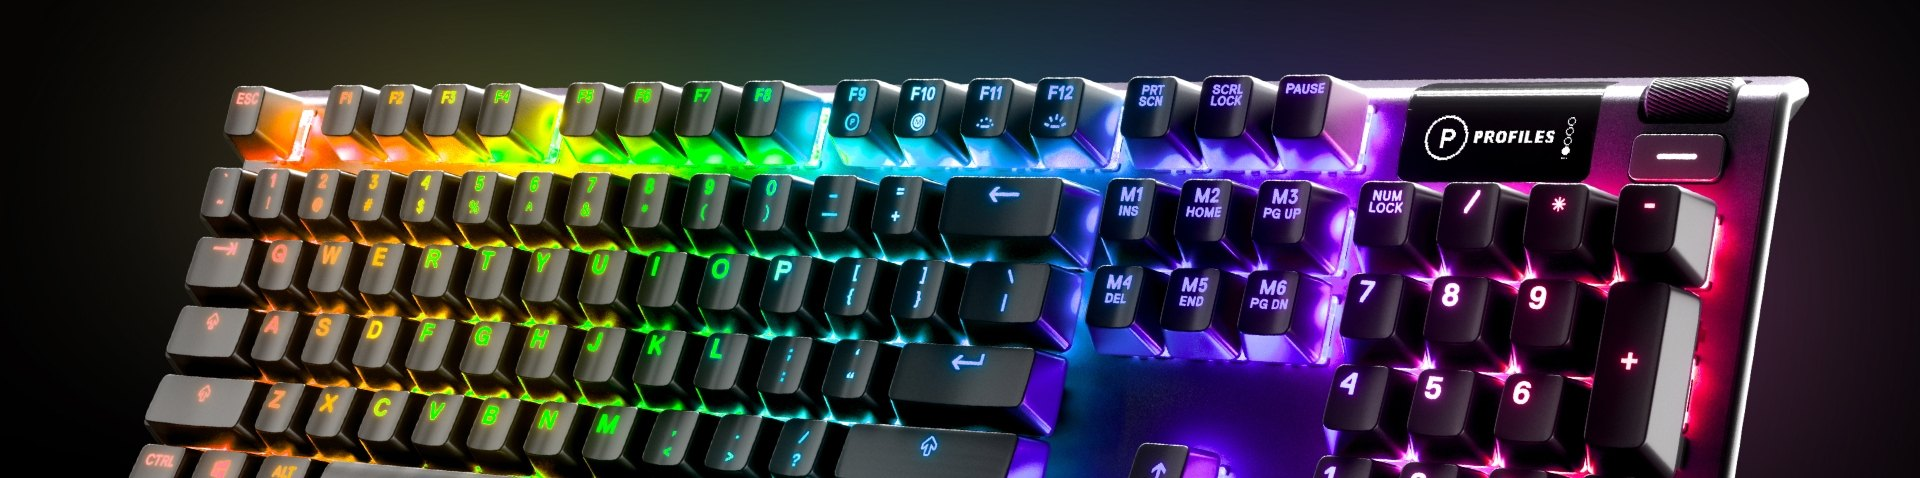 Visual of an Apex keyboard with RGB illumination